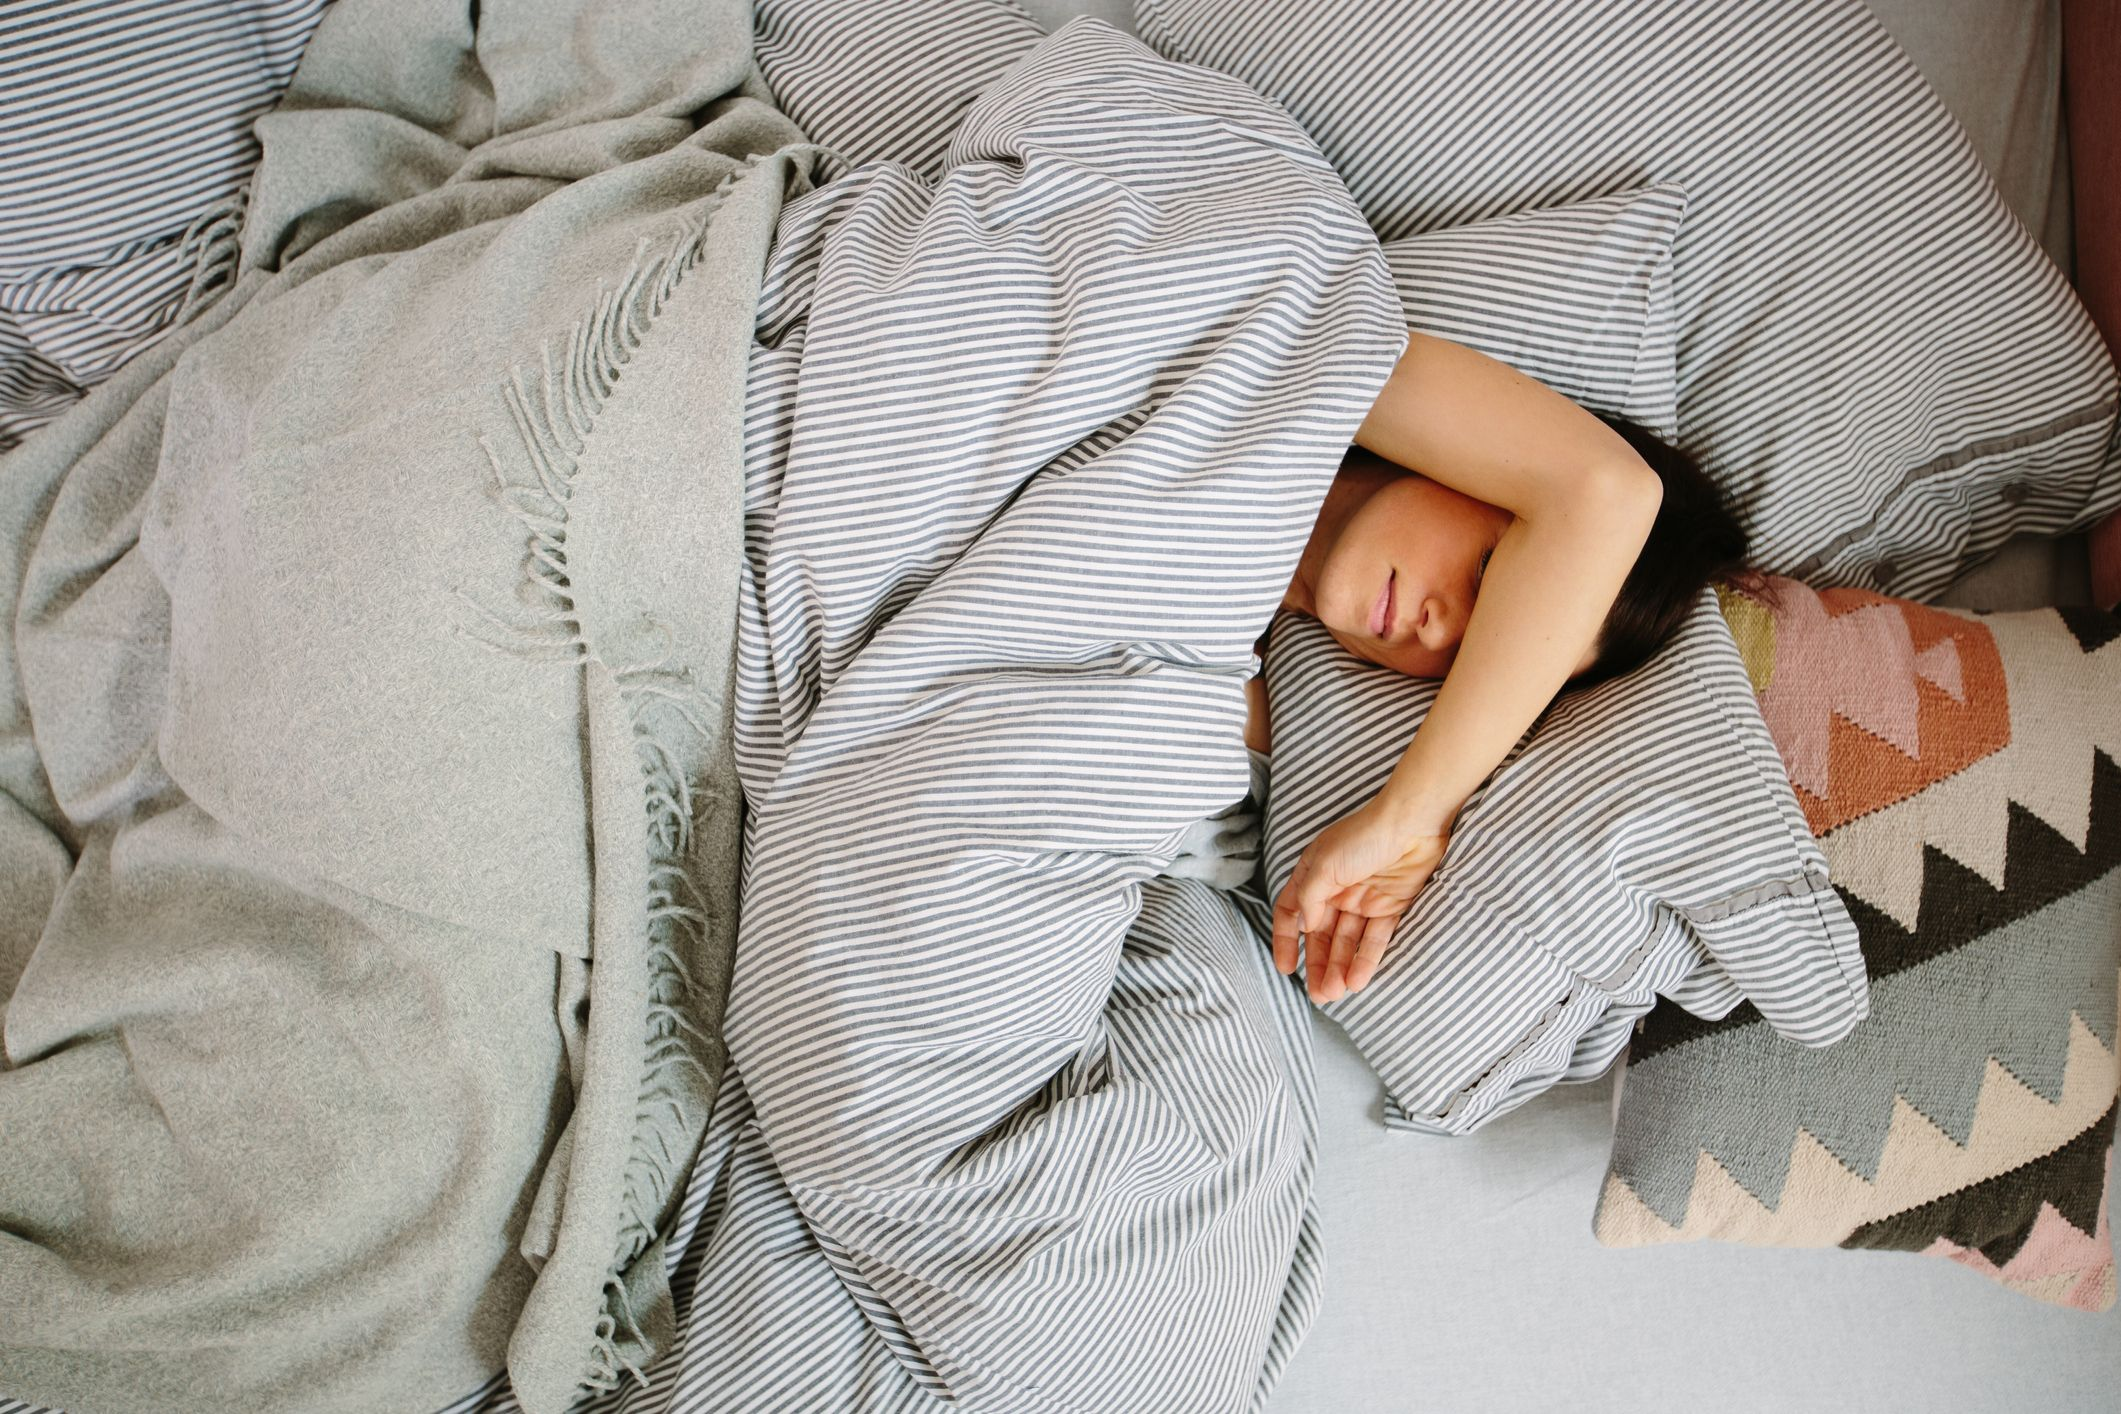 Hypersomnia could be the reason you're waking up tired after a long sleep